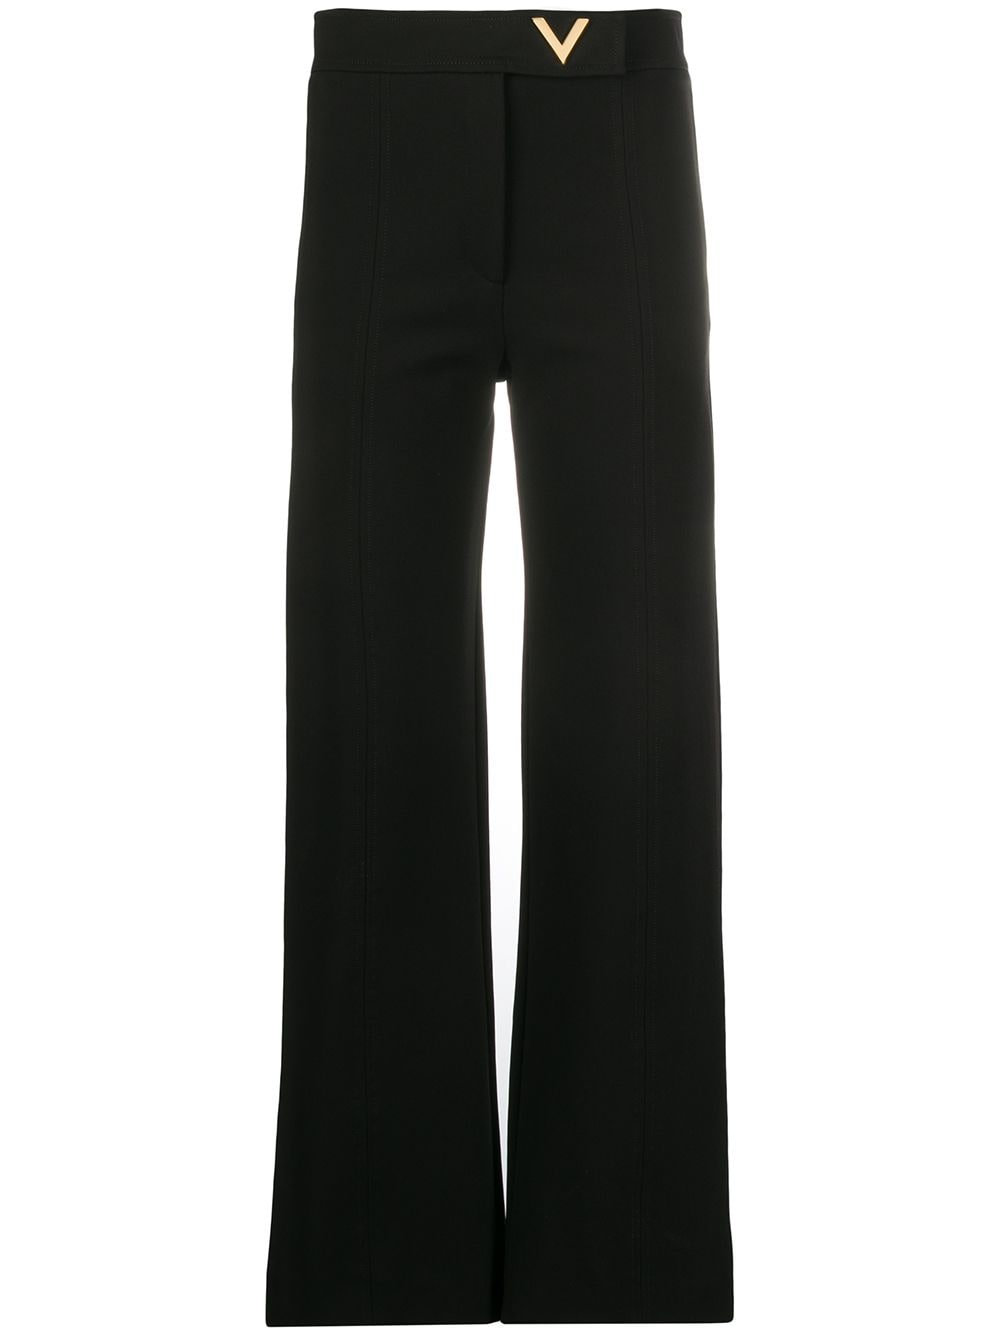 Vgold Trousers